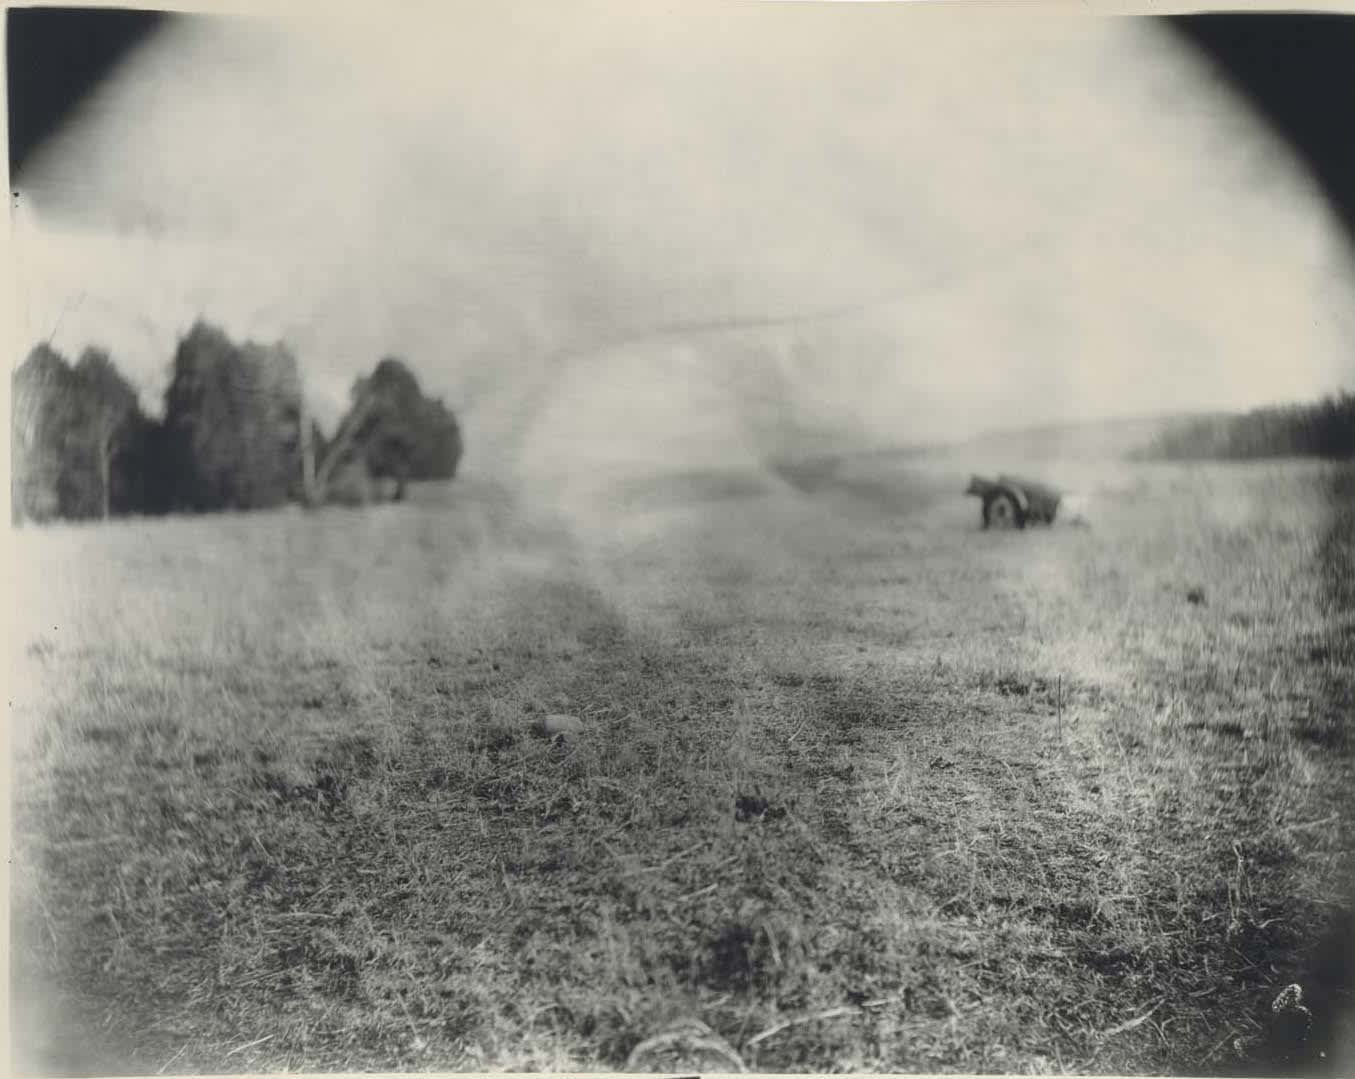 Sally Mann Remembered Light & Landscapes